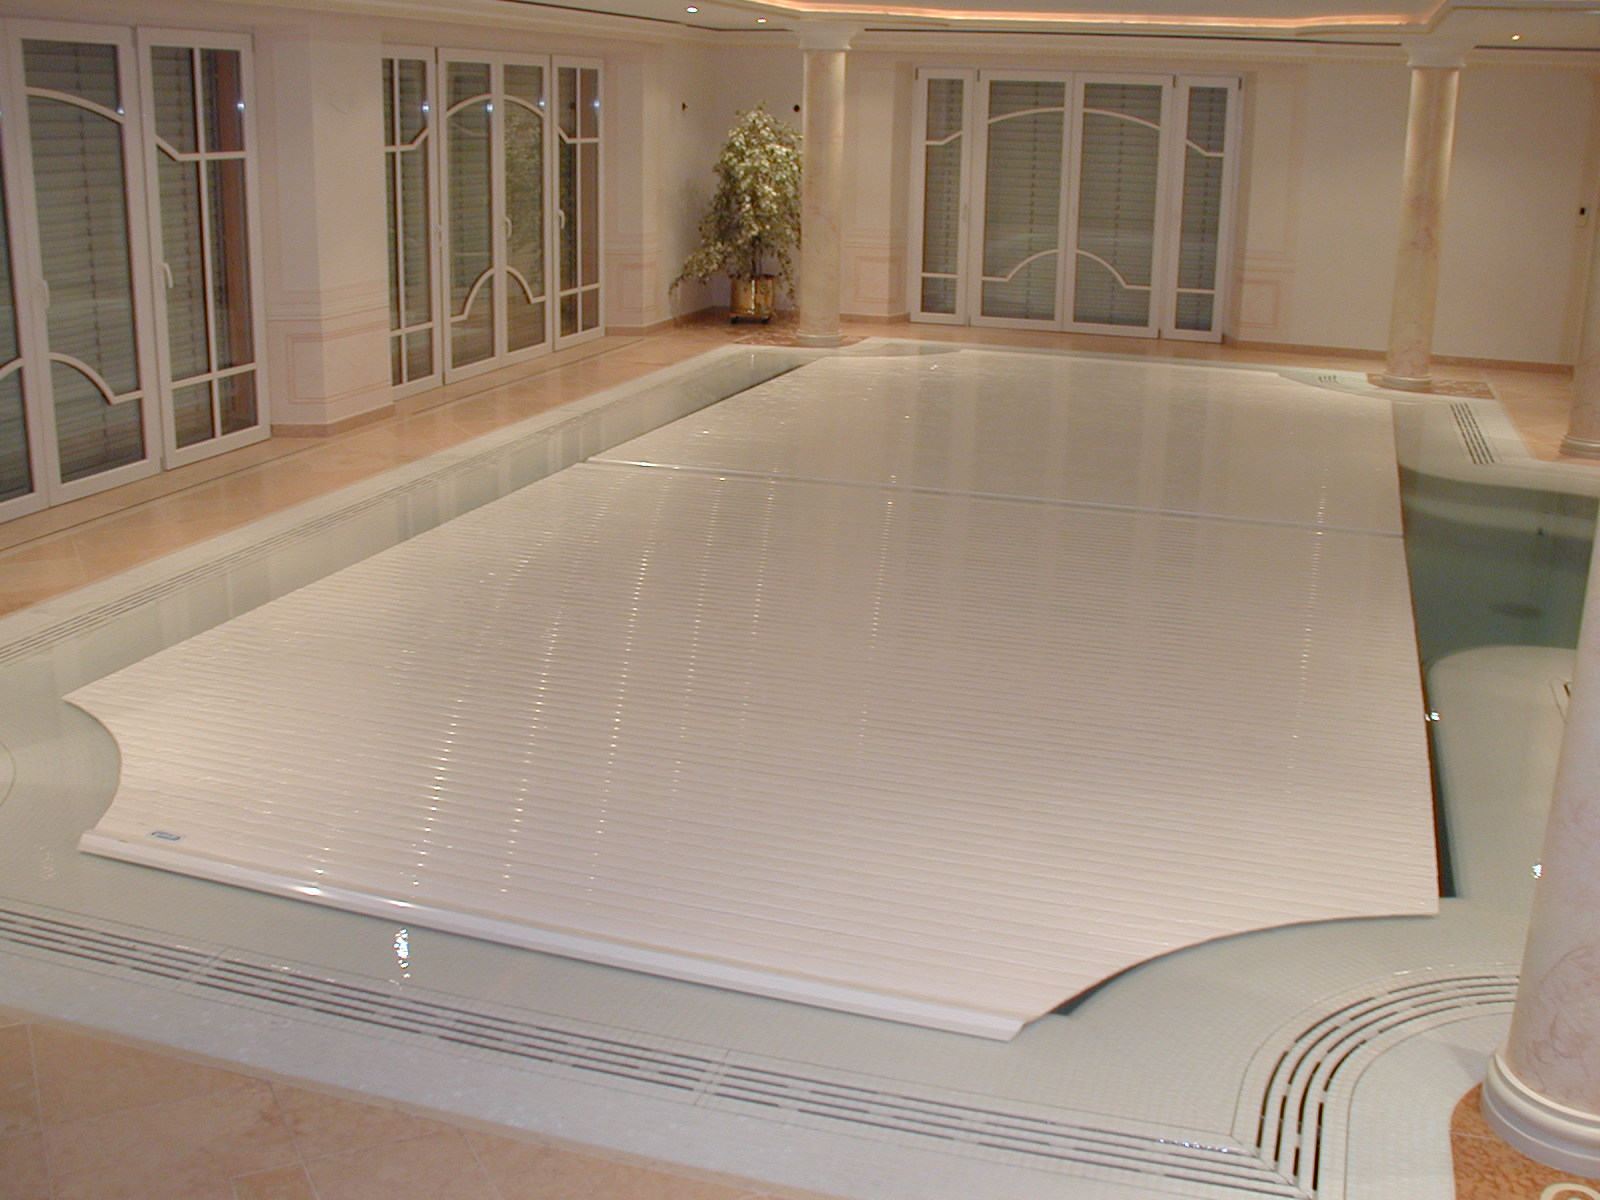 IndoorOutdoor  Automatic Energy Saving Pool Covers by